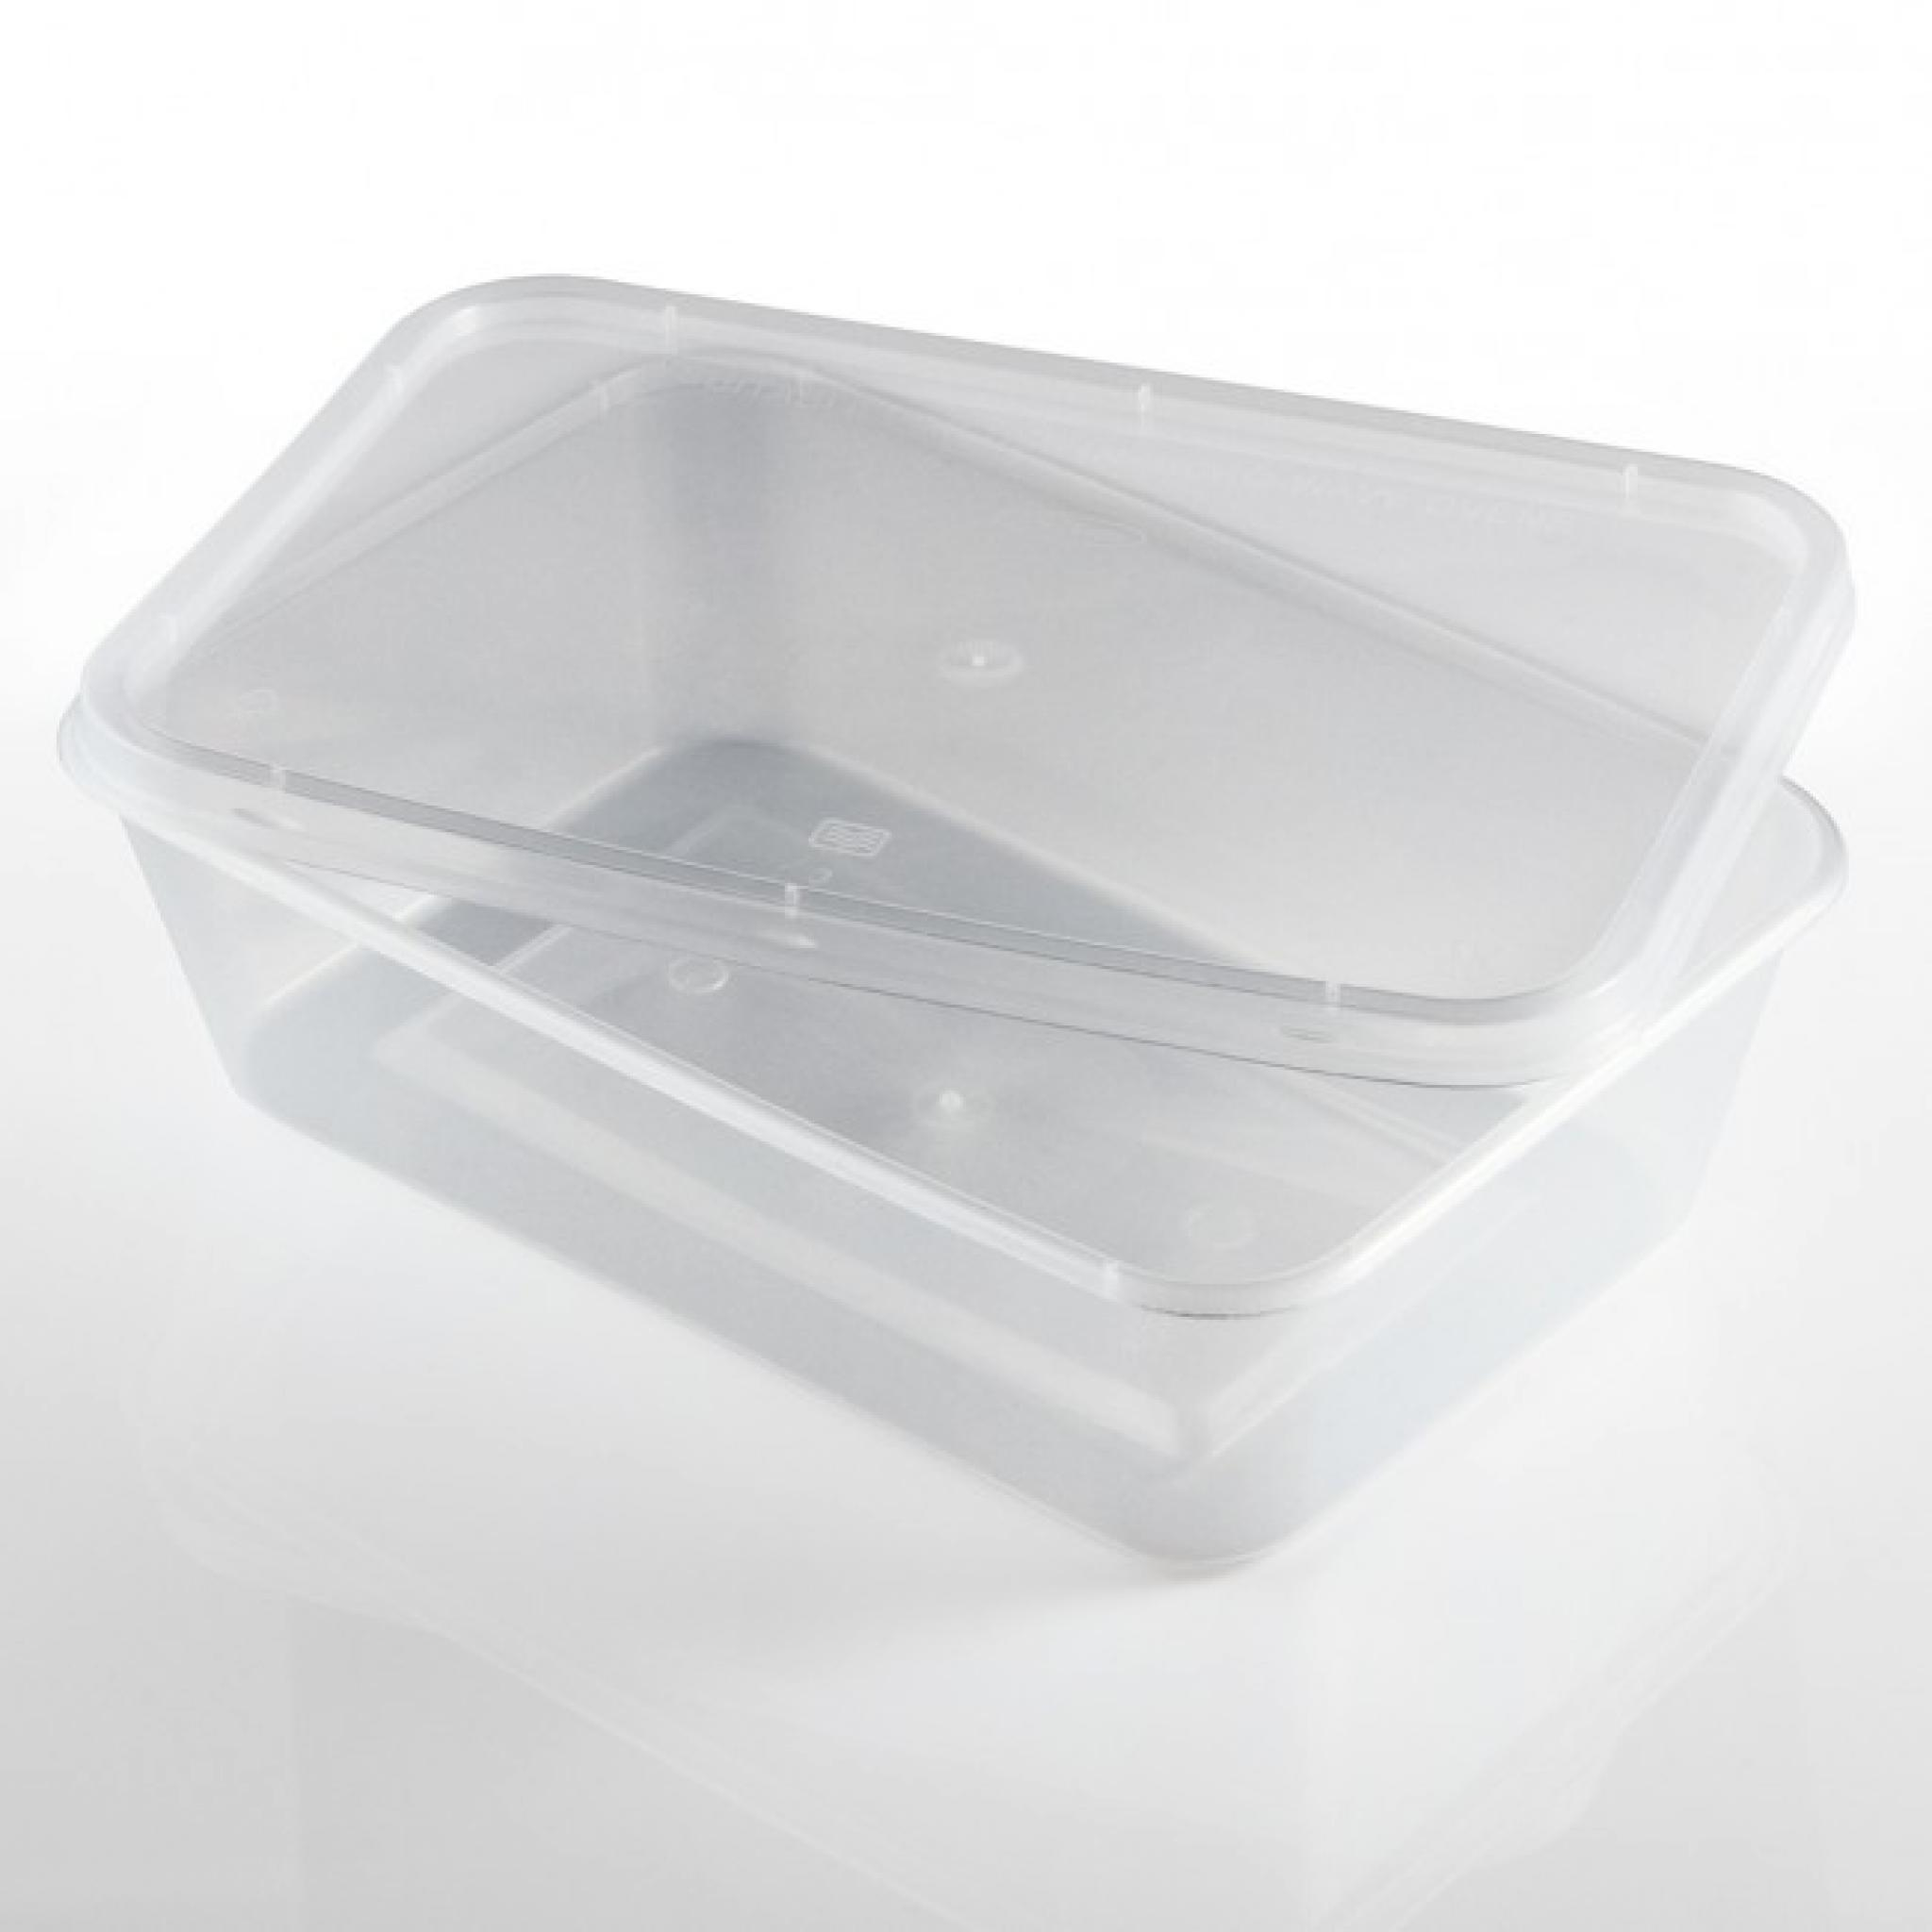 Rectangular 500ml Microwave Clear Plastic Food Containers For Freezing Takeaway Hot Cold Foods 500cc